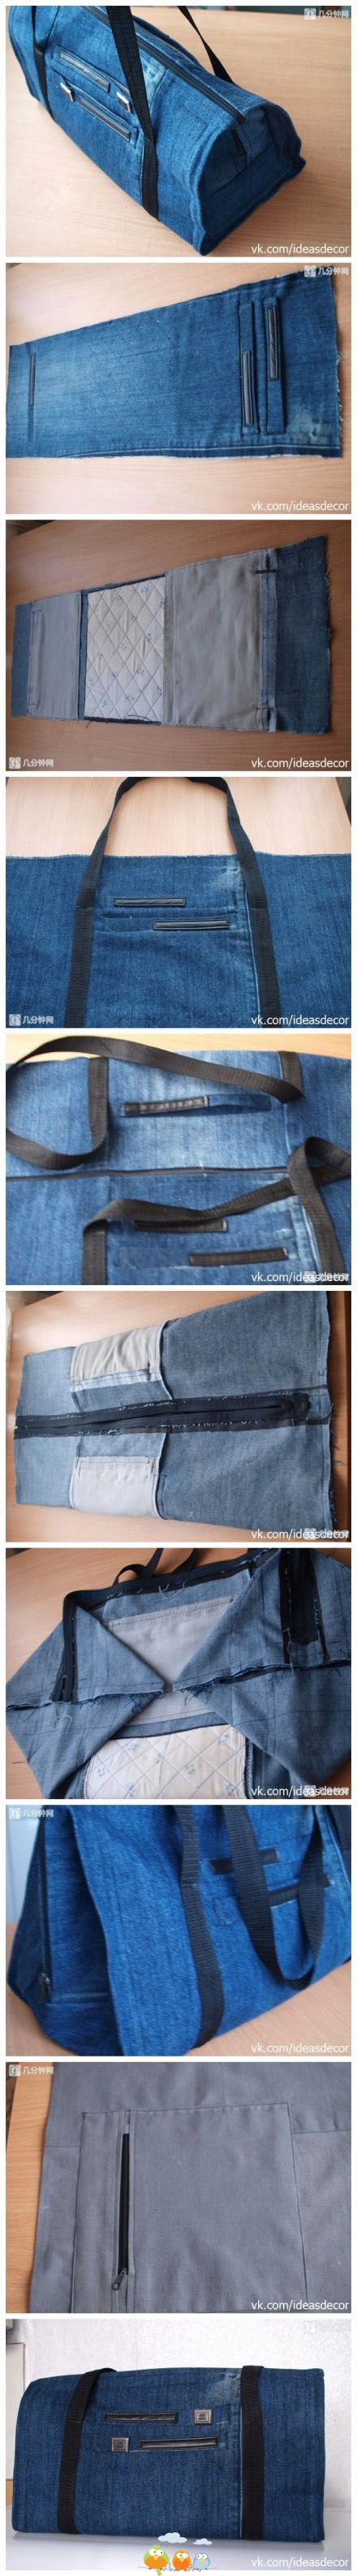 repurpose jeans into a bag                                                                                                                                                                                 More